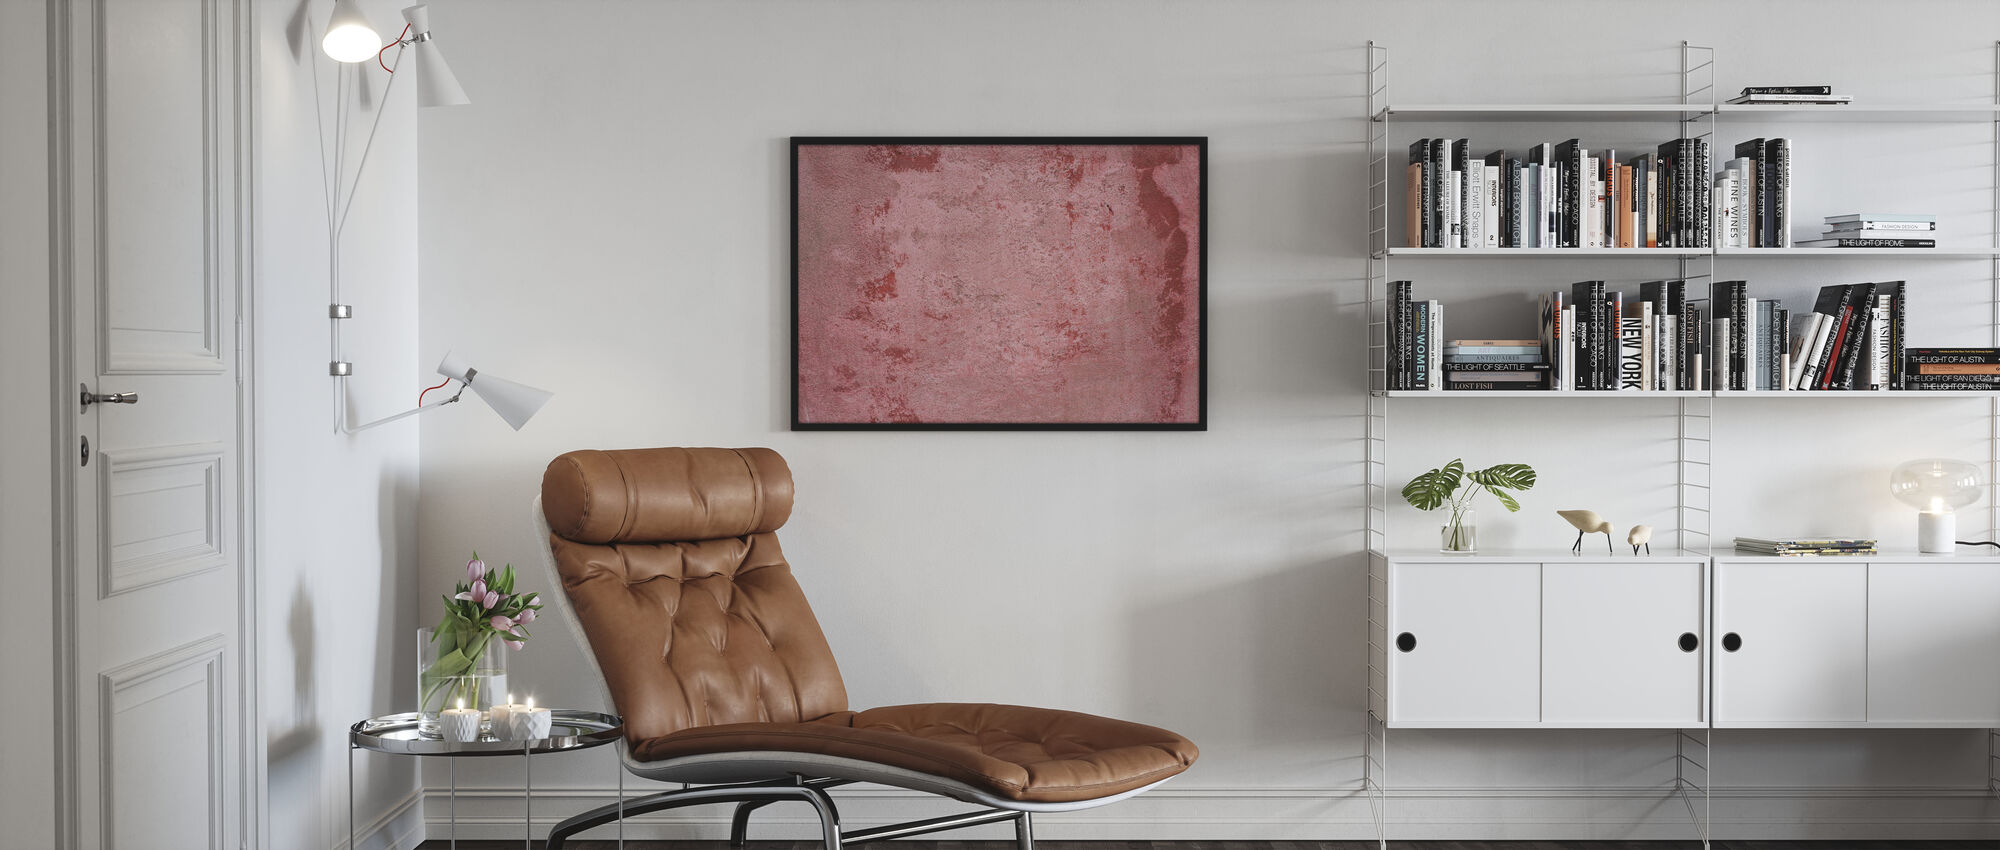 Rusty Patched Plate - Poster - Living Room